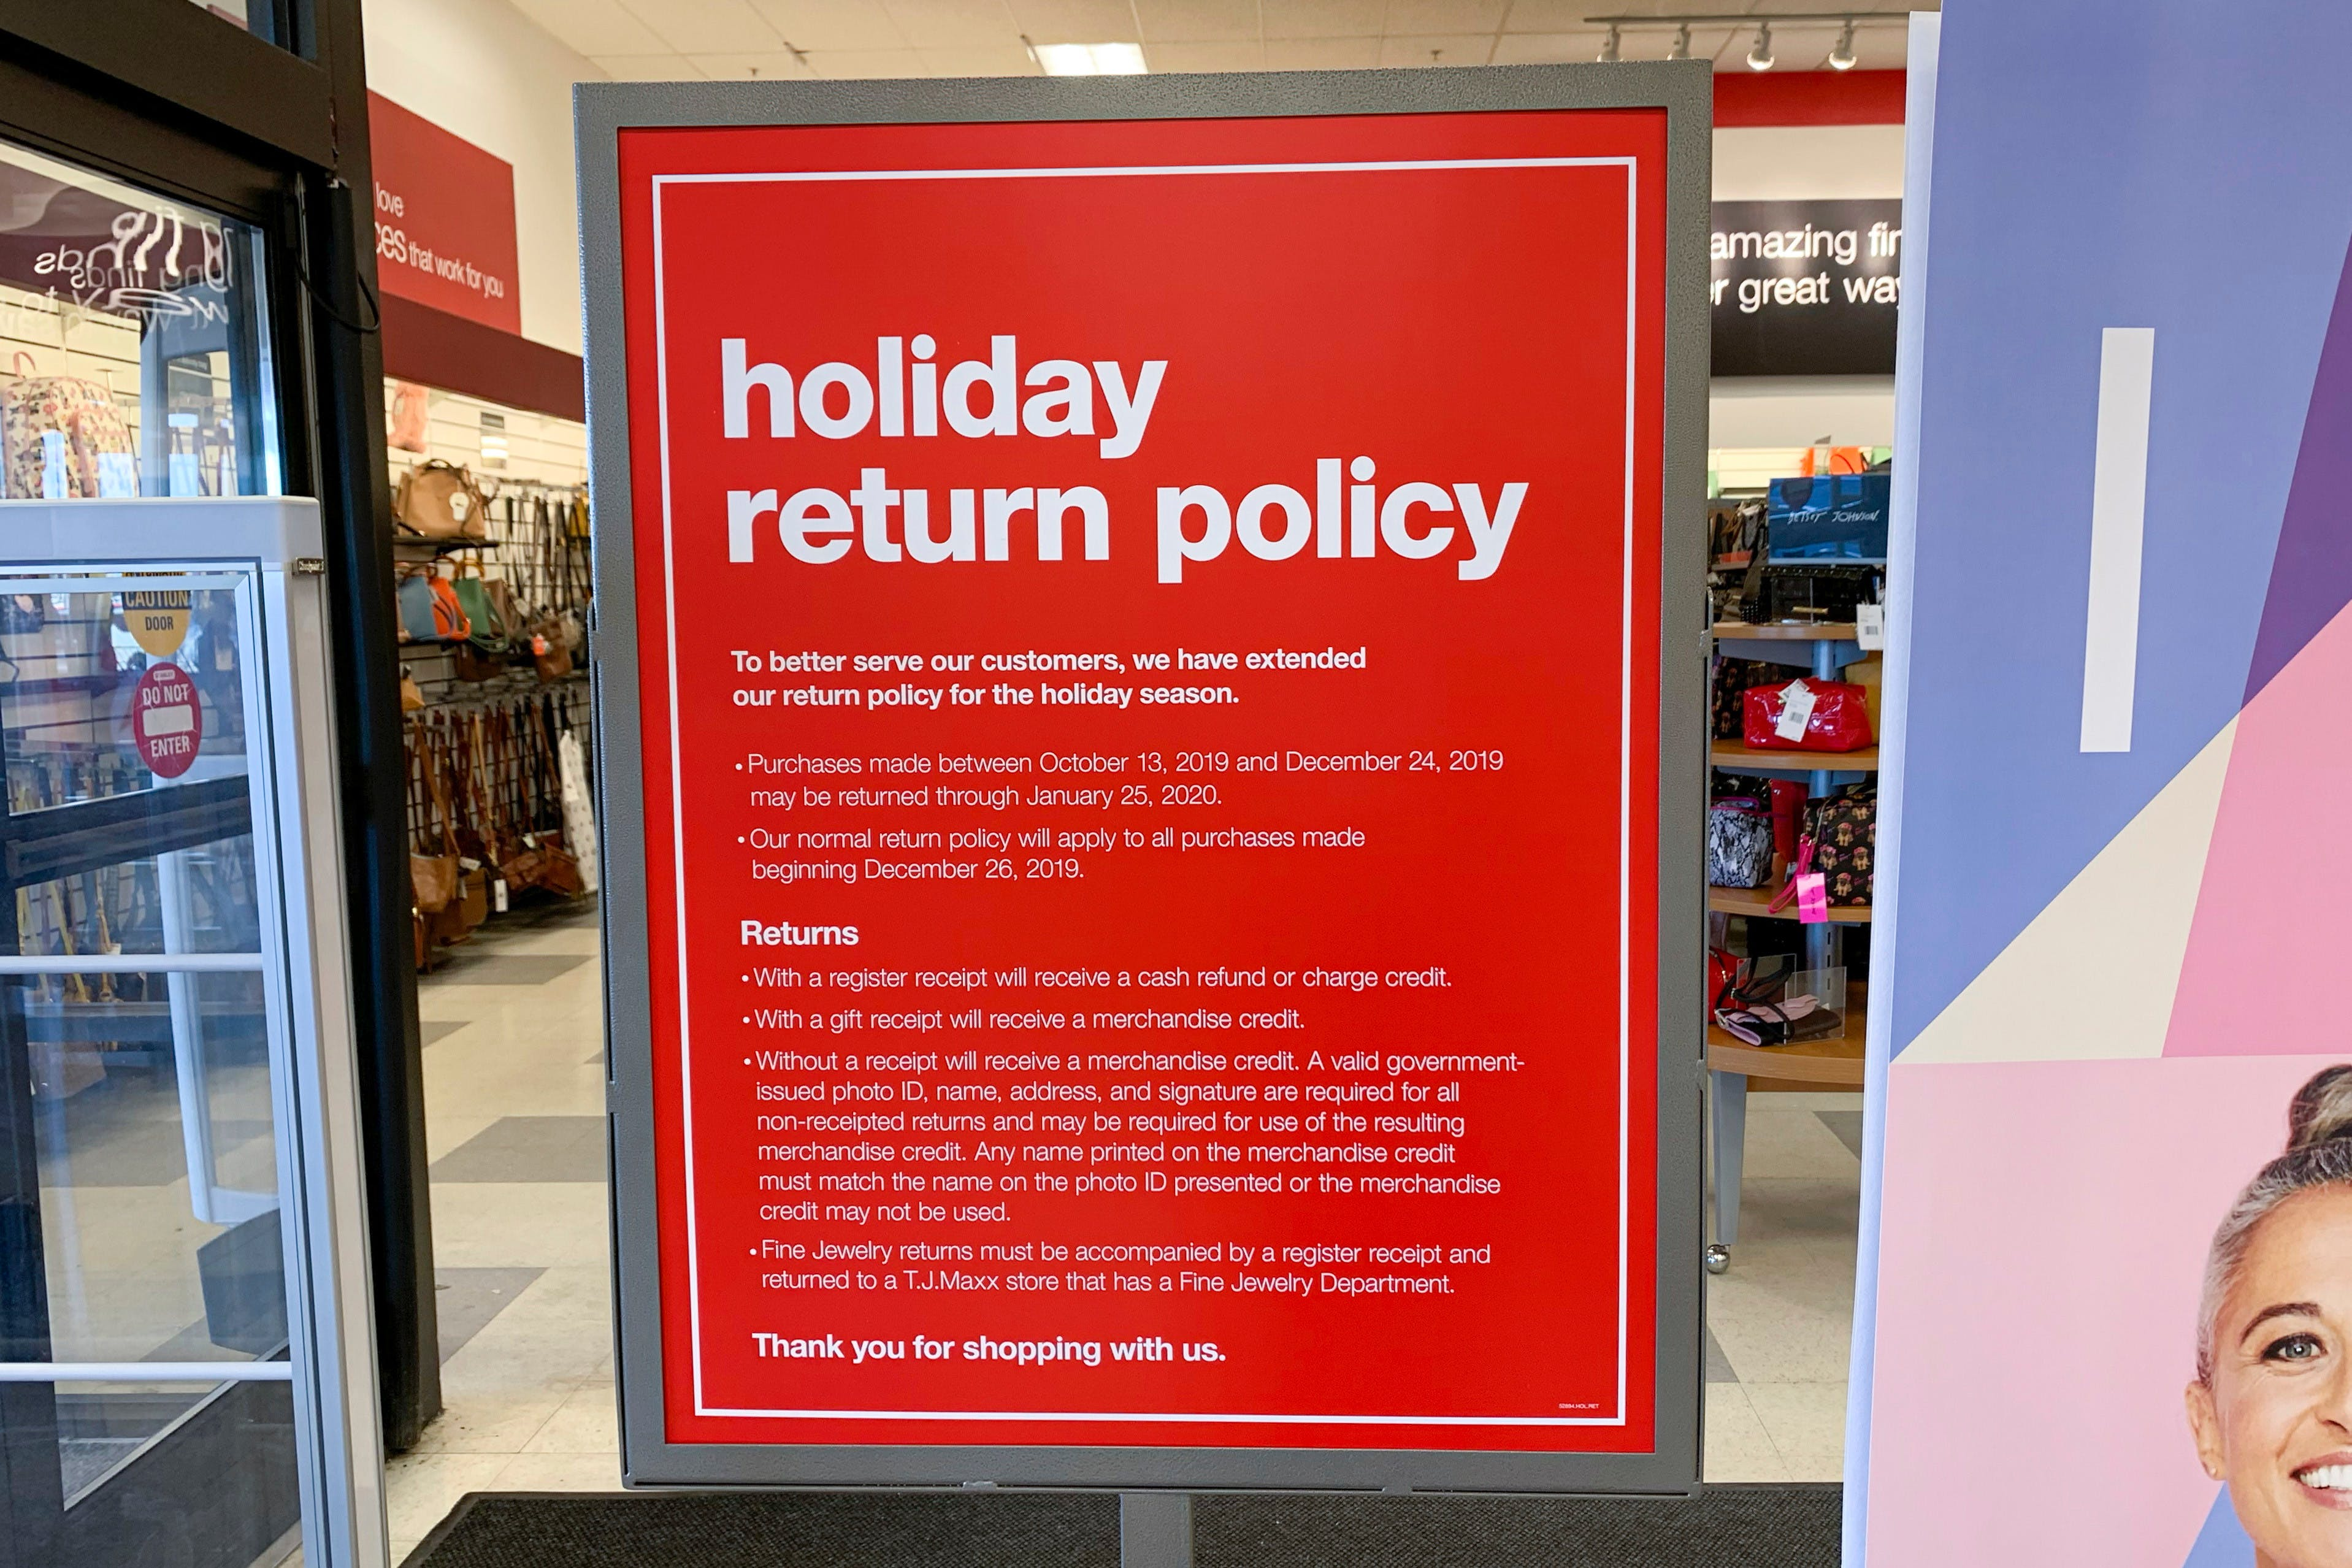 Tj Maxx After Christmas Sales 2020 24 Freaking Amazing Ways to Save at T.J.Maxx   The Krazy Coupon Lady